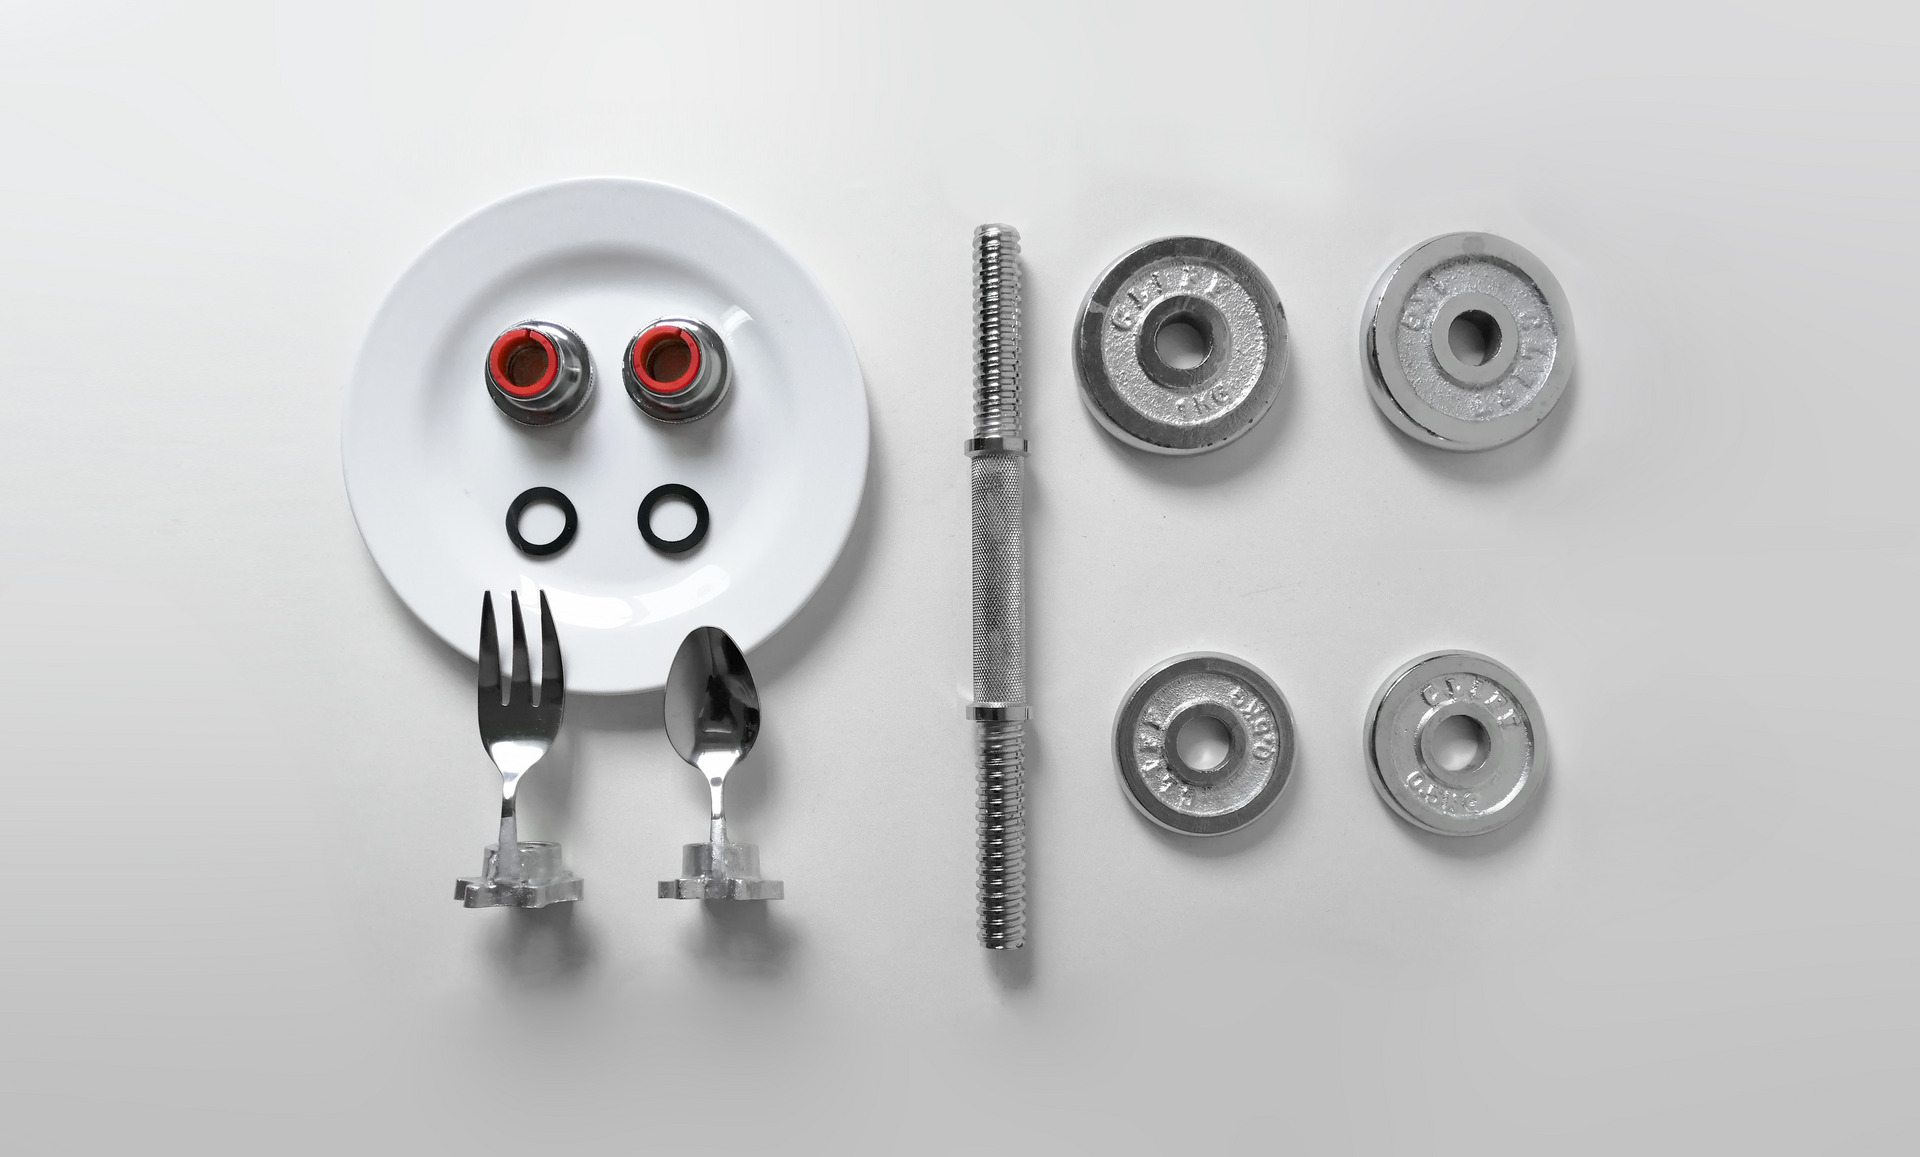 Components of dumbbell cutlery